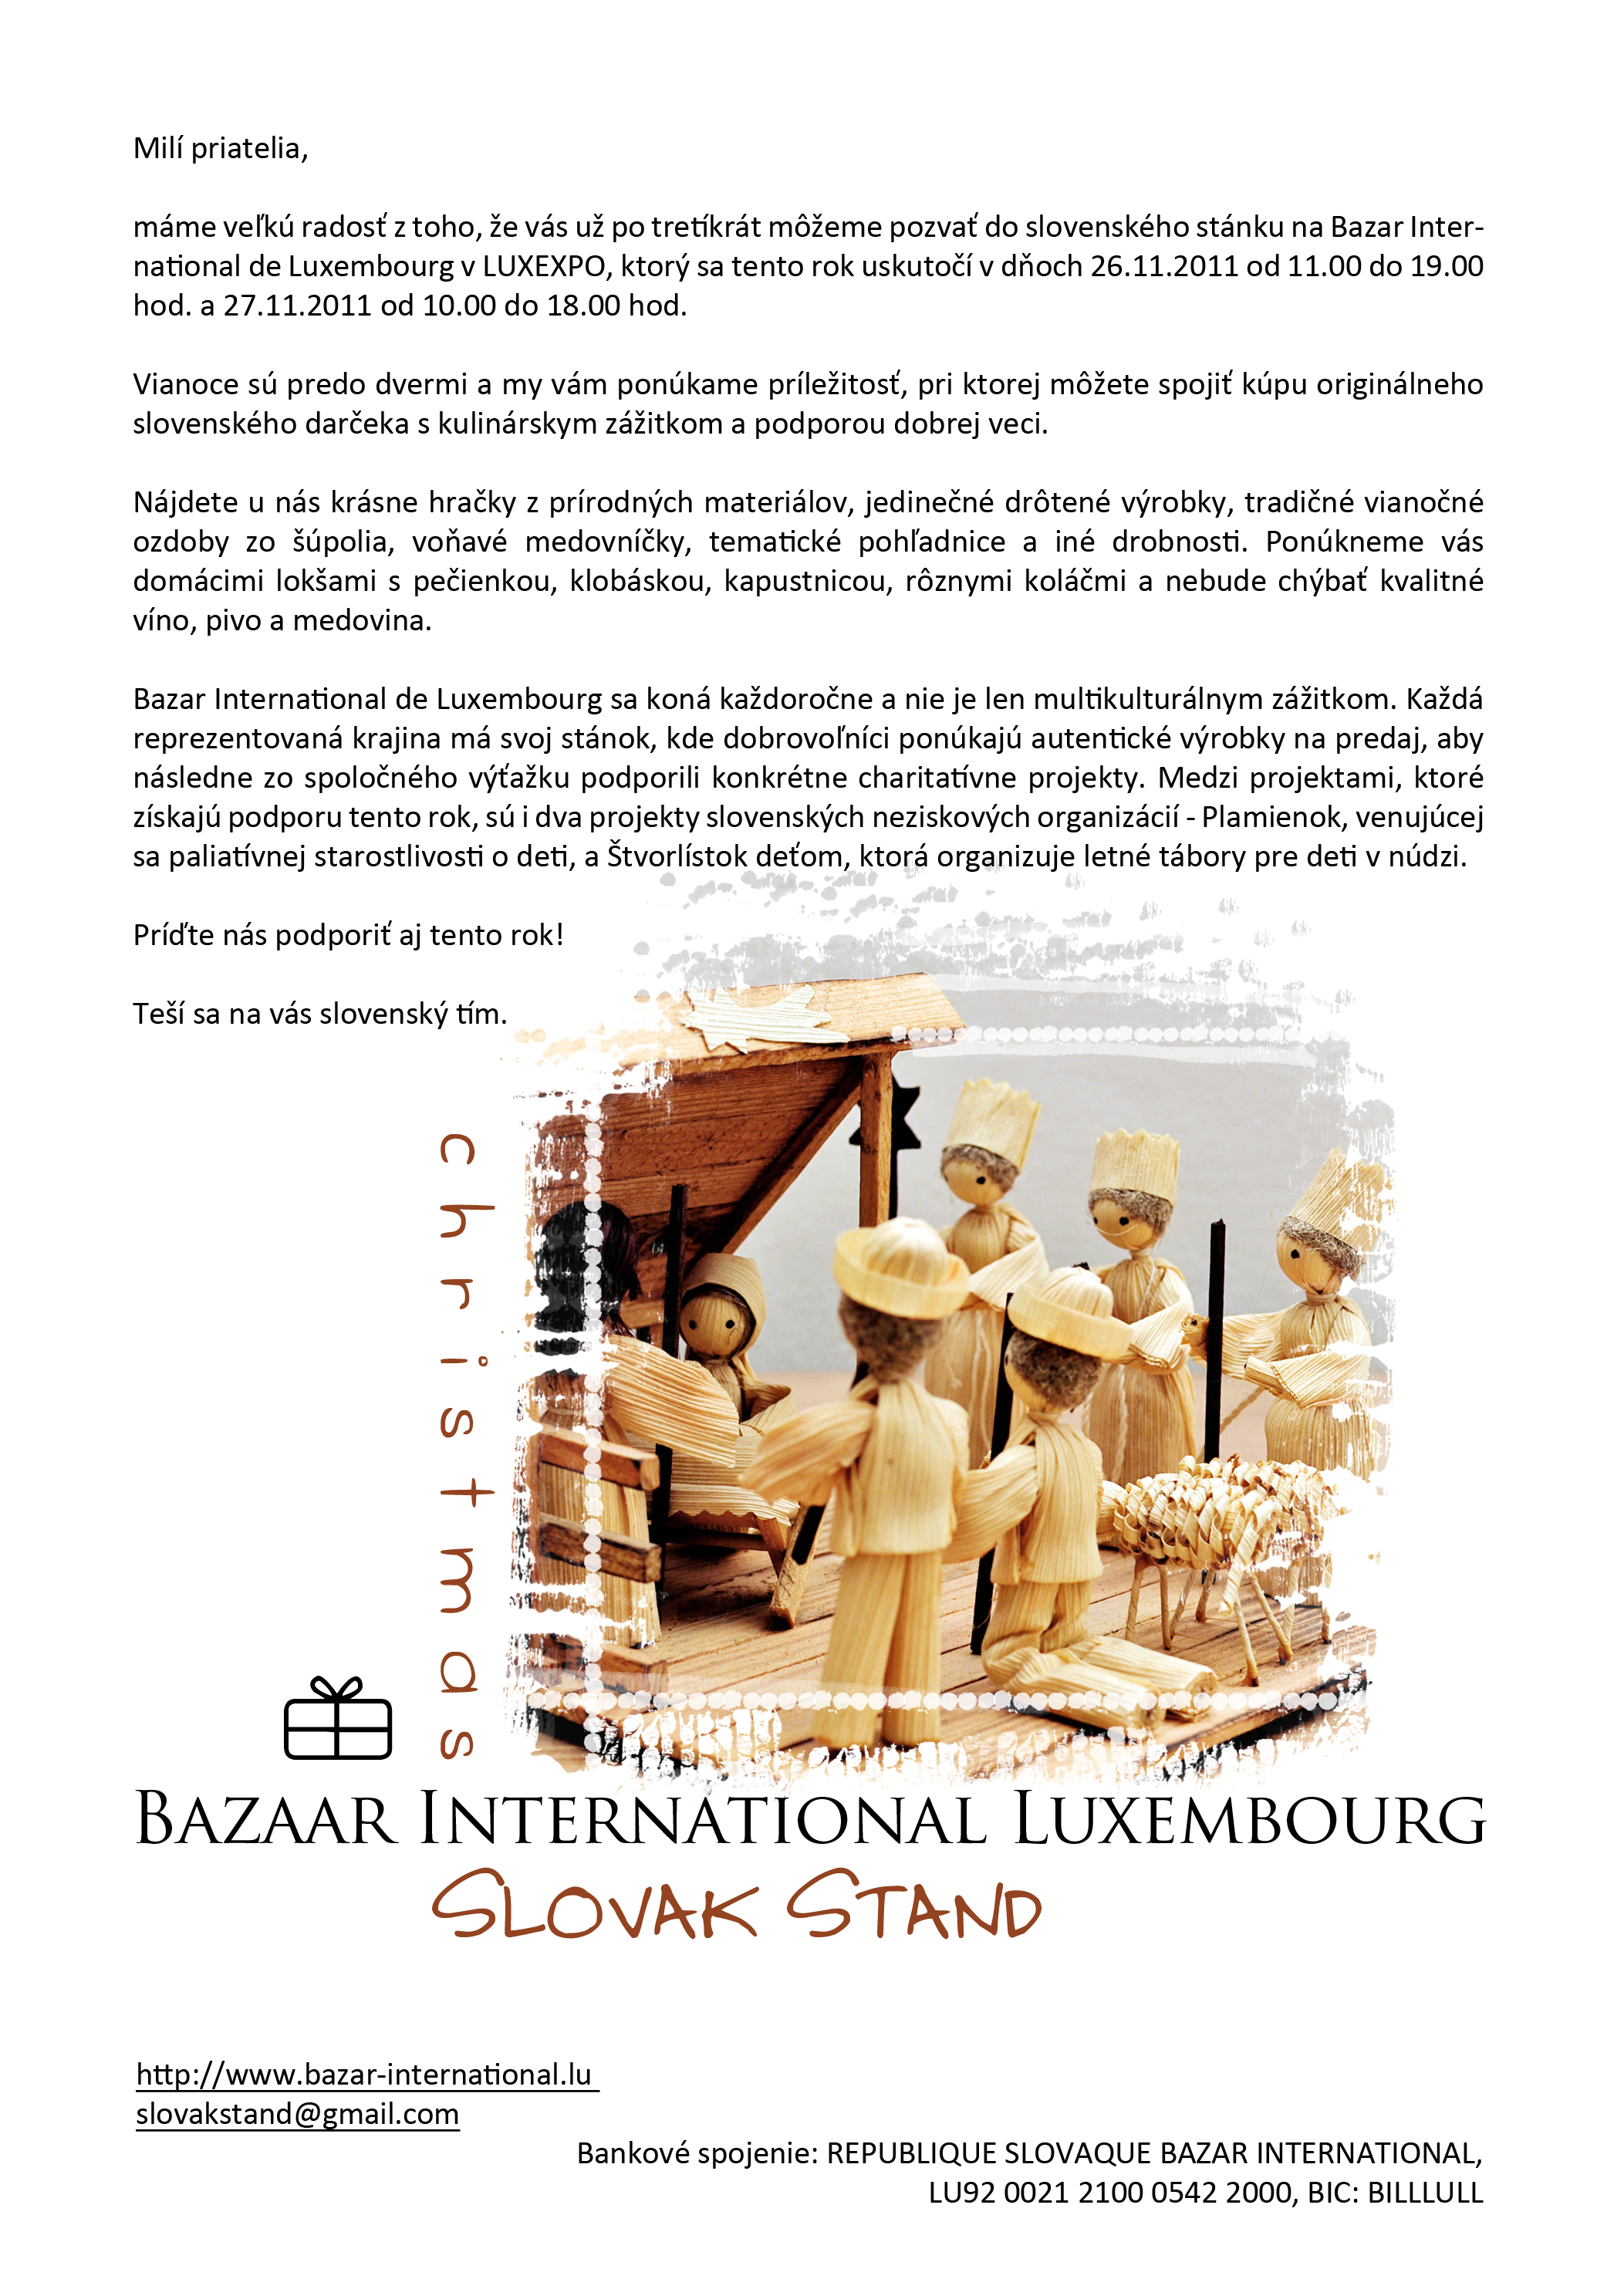 Pozvanka na Bazar International